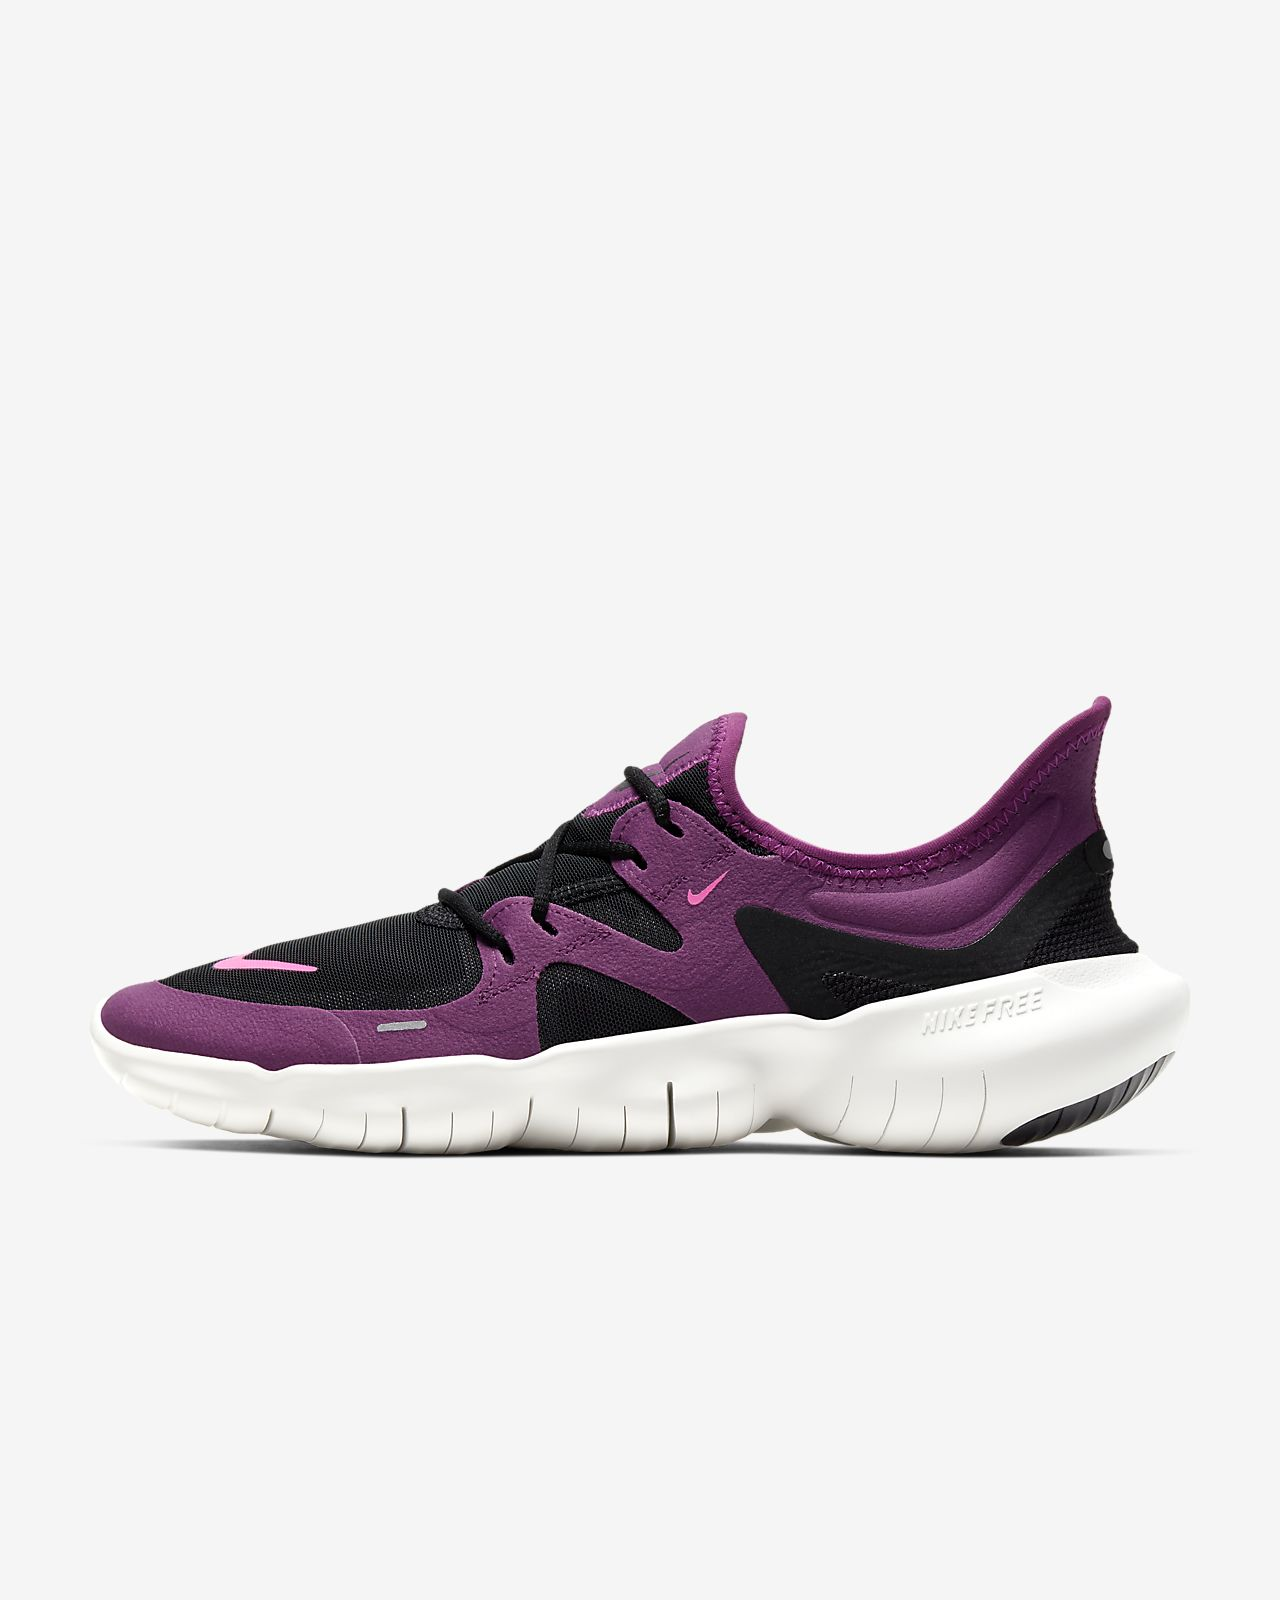 Trail Nike Pink White Womens Black Free 5.0 Tr Fit 4 Running